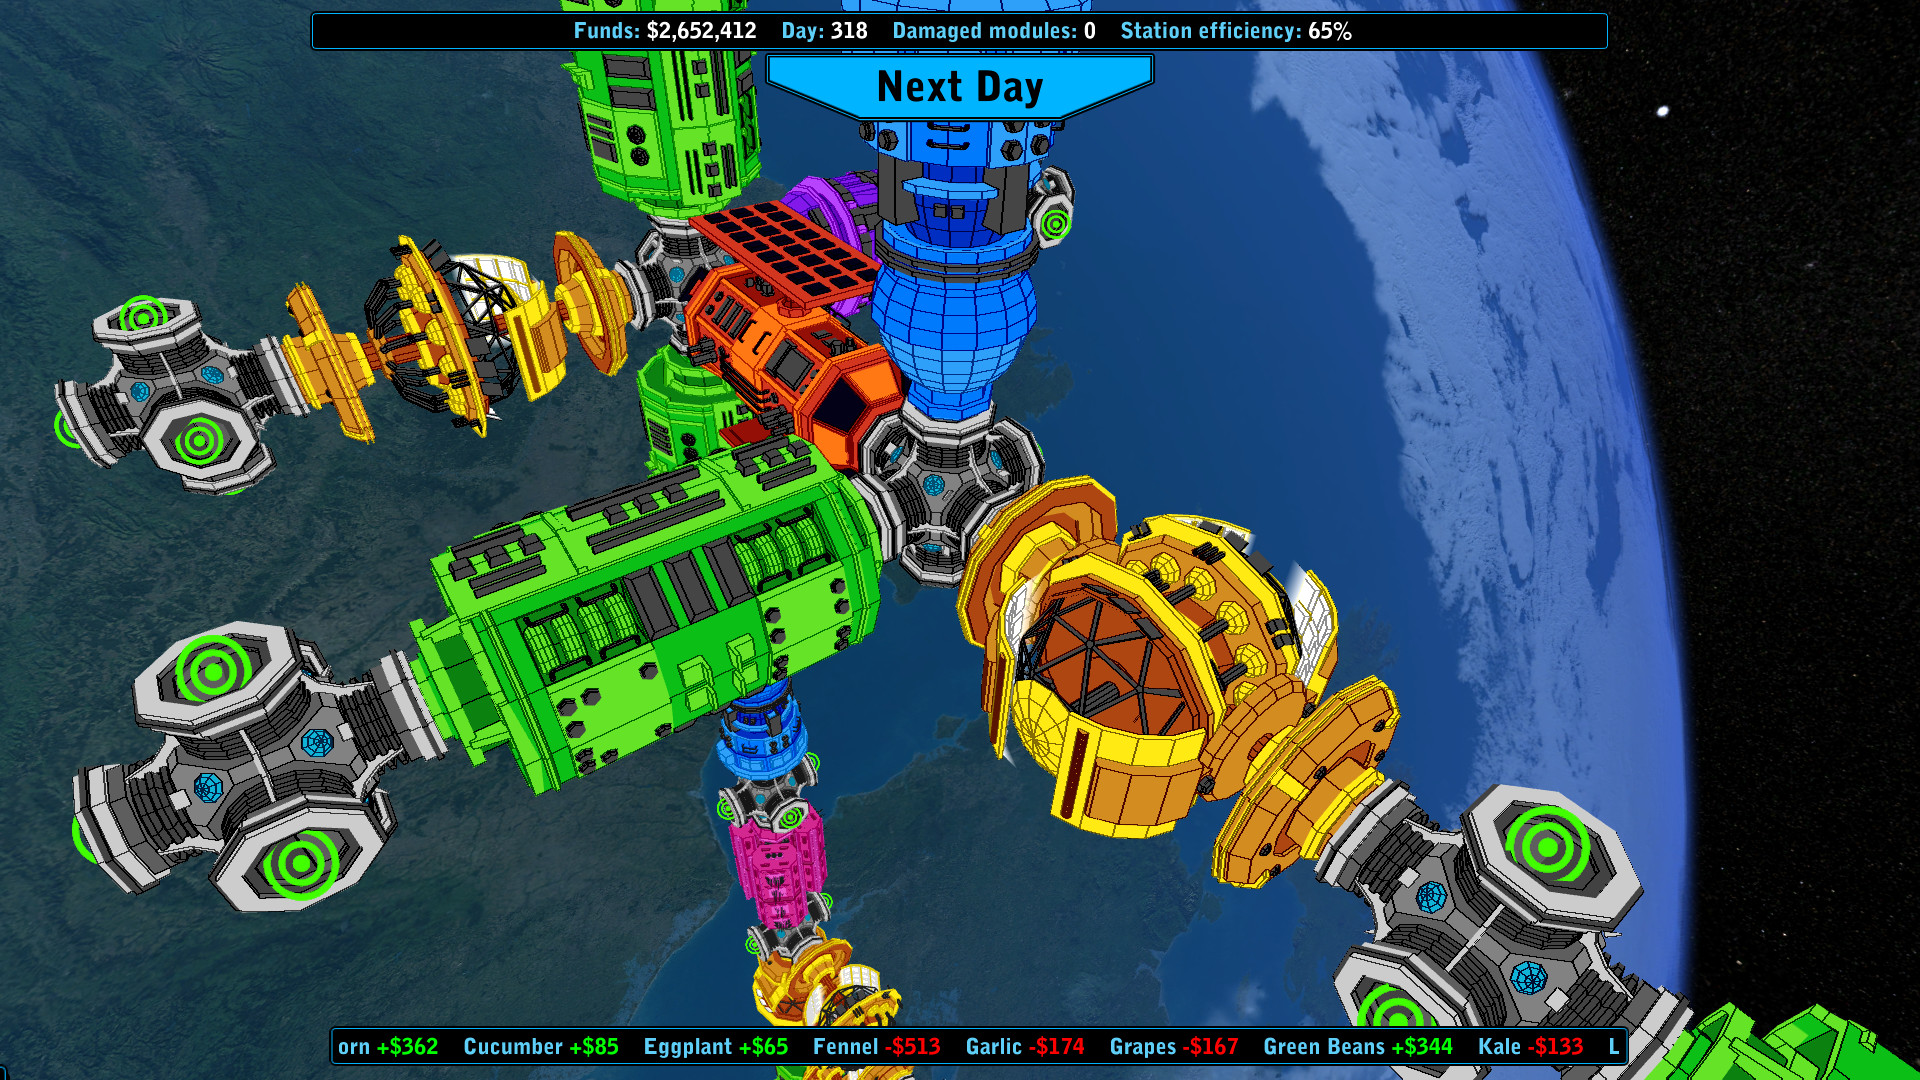 promo code 2edc1 e99a3 Developing Universal Space Station Inc. – A new game from a veteran  developer